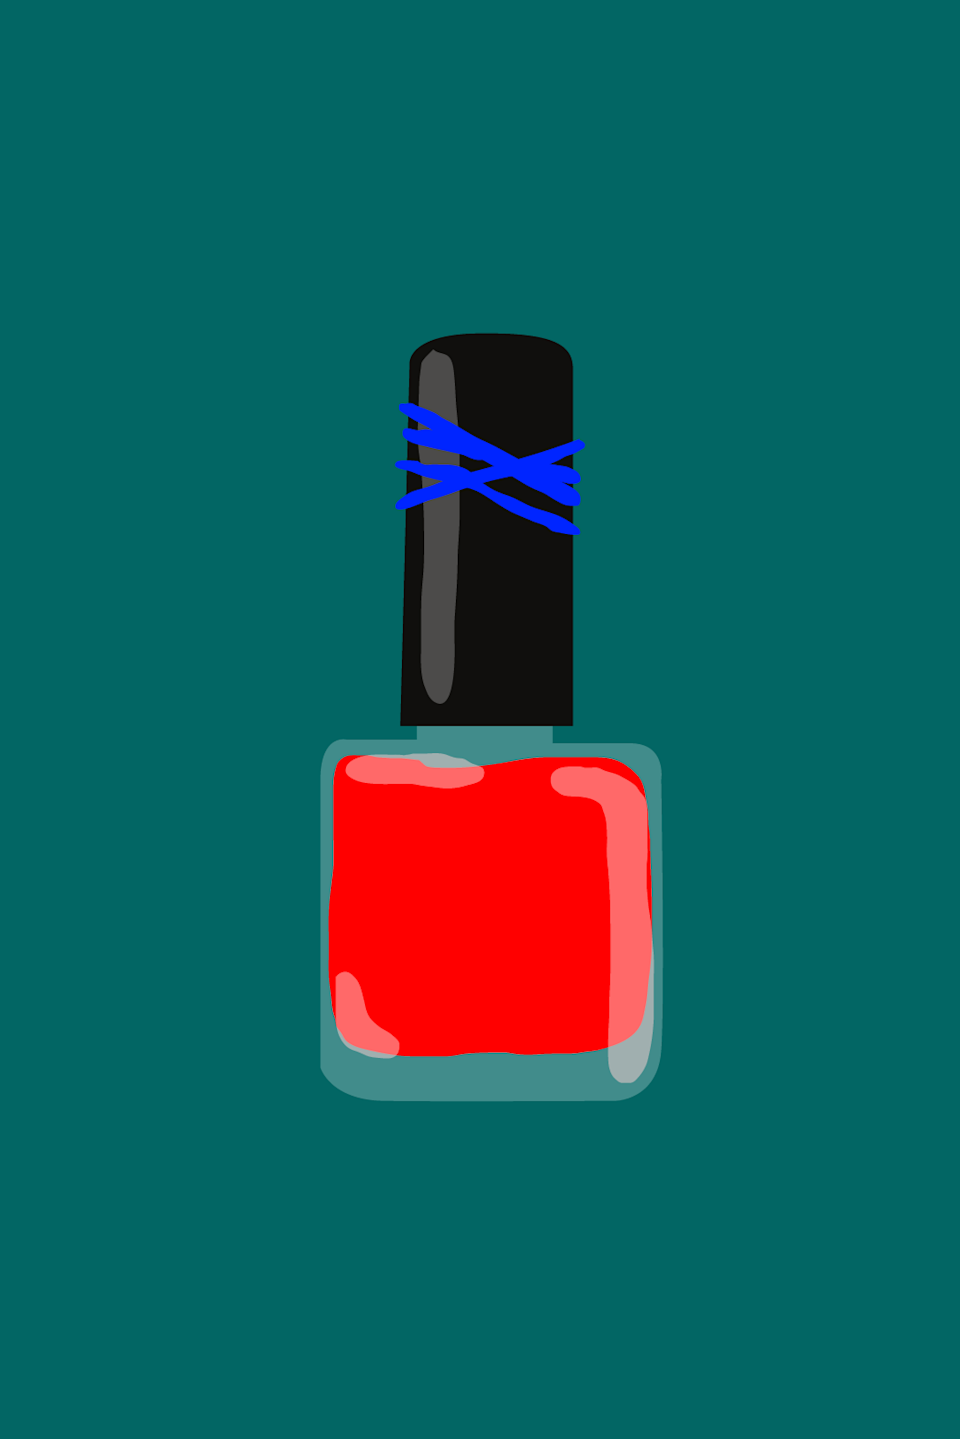 """<strong>10. Rubber Band = Nail Polish Opener </strong><br><br>Who among us hasn't used our own teeth to try to pry to open a stubborn, sealed shut nail polish bottle? Dental care is expensive, so try this simple and effective hack instead: Wrap the lid of the bottle in a rubber band to create a grip, then put a little elbow into it to twist that sucker loose.<span class=""""copyright"""">Illustrated by Isabel Castillo.</span>"""